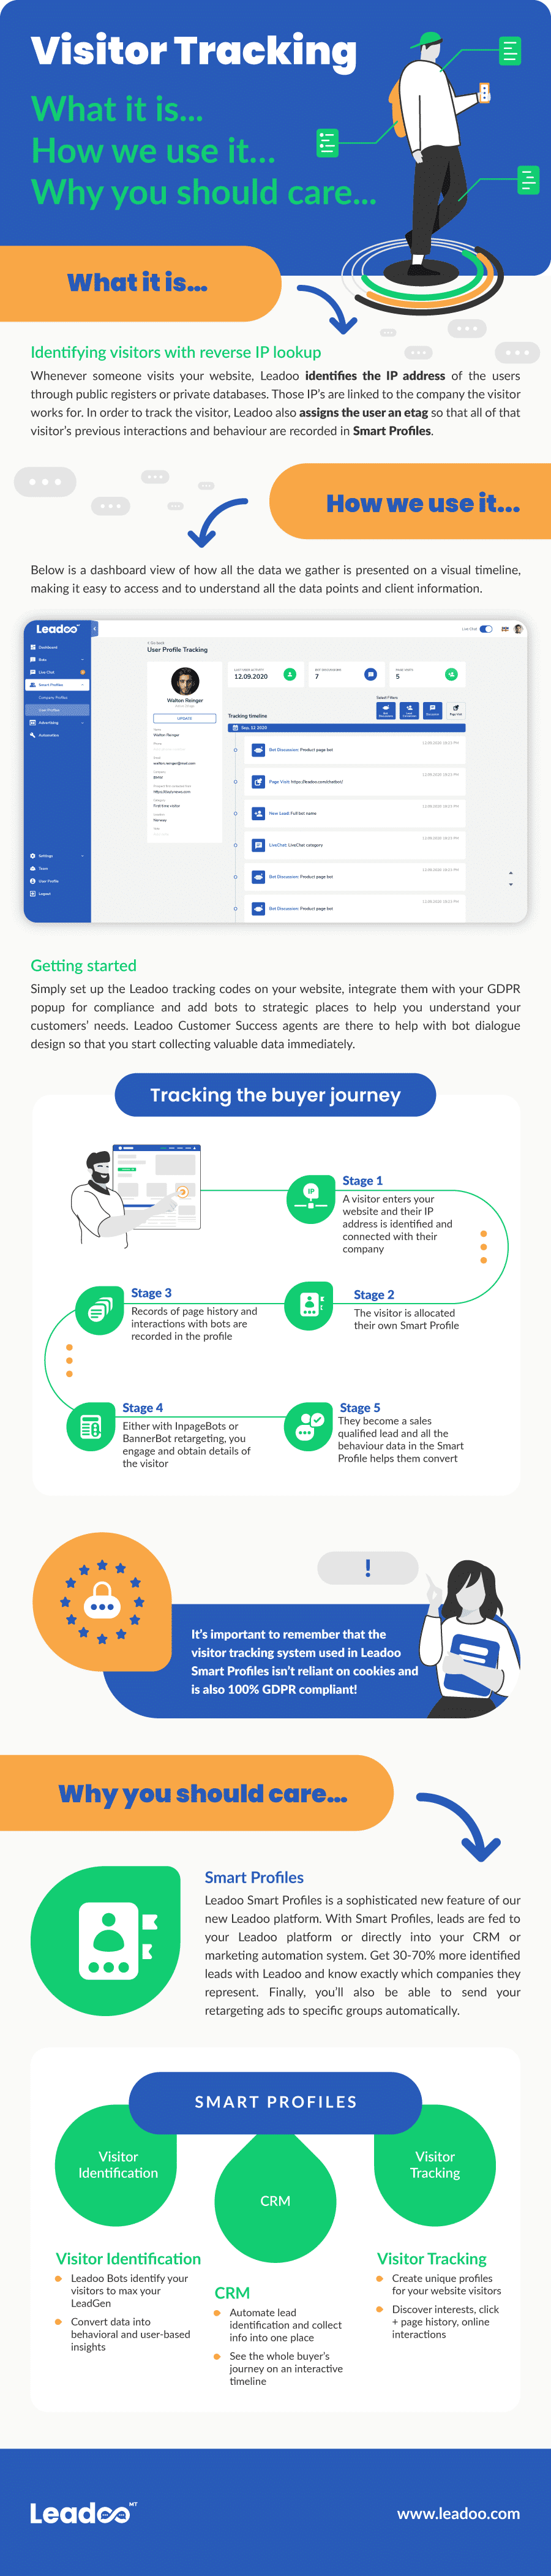 Visitor Tracking infographic visitor tracking Leadoo Visitor Tracking Explained